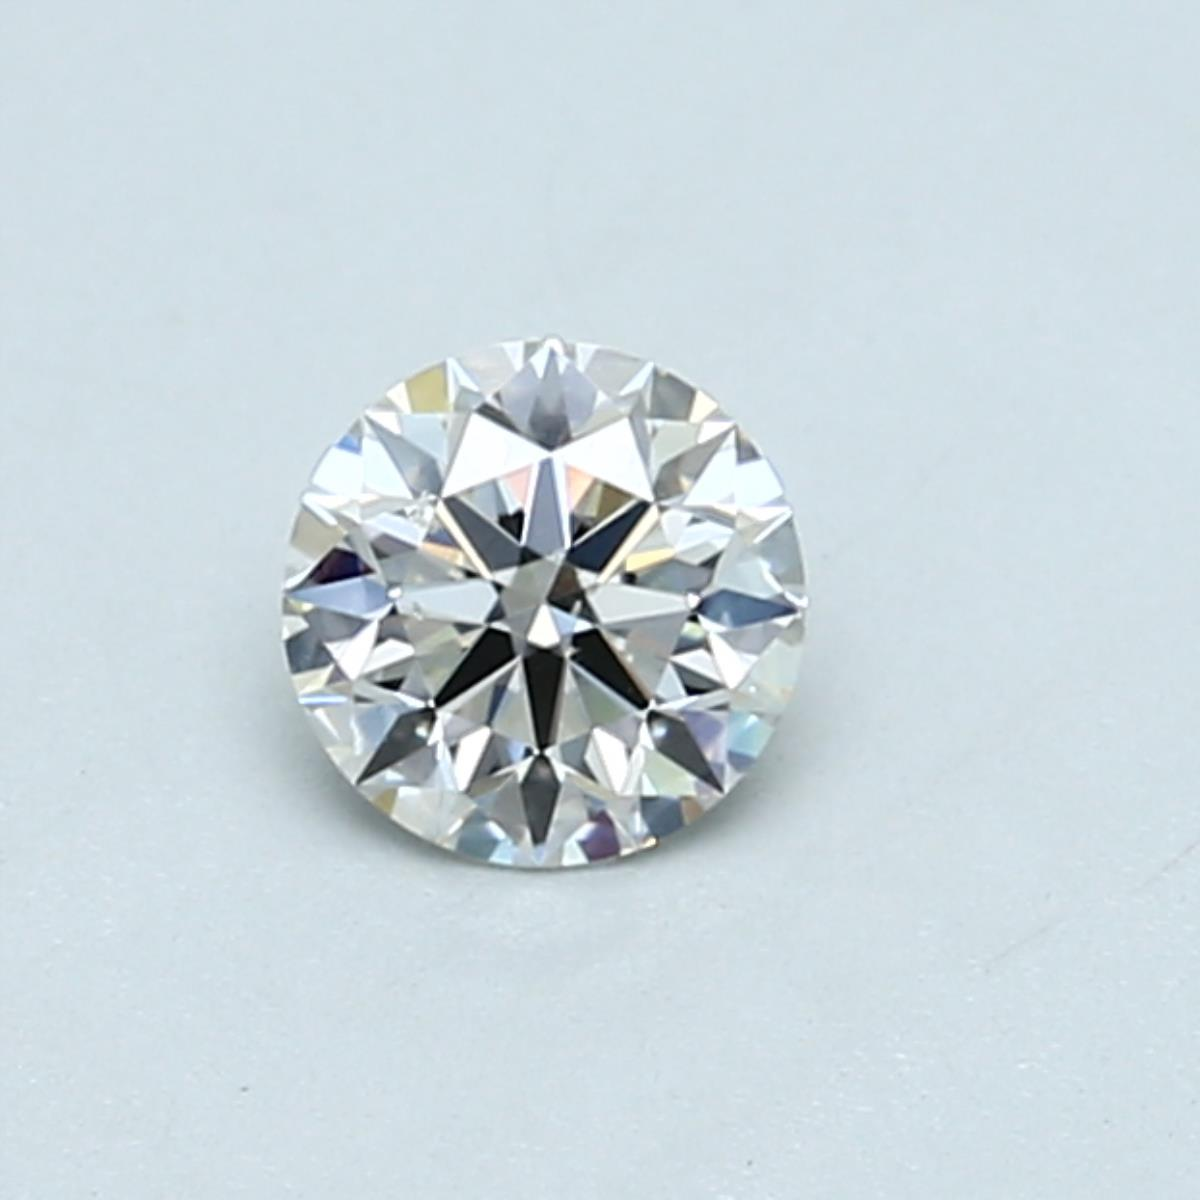 .40 carat Round Diamond, Ideal cut, graded by the GIA laboratories.